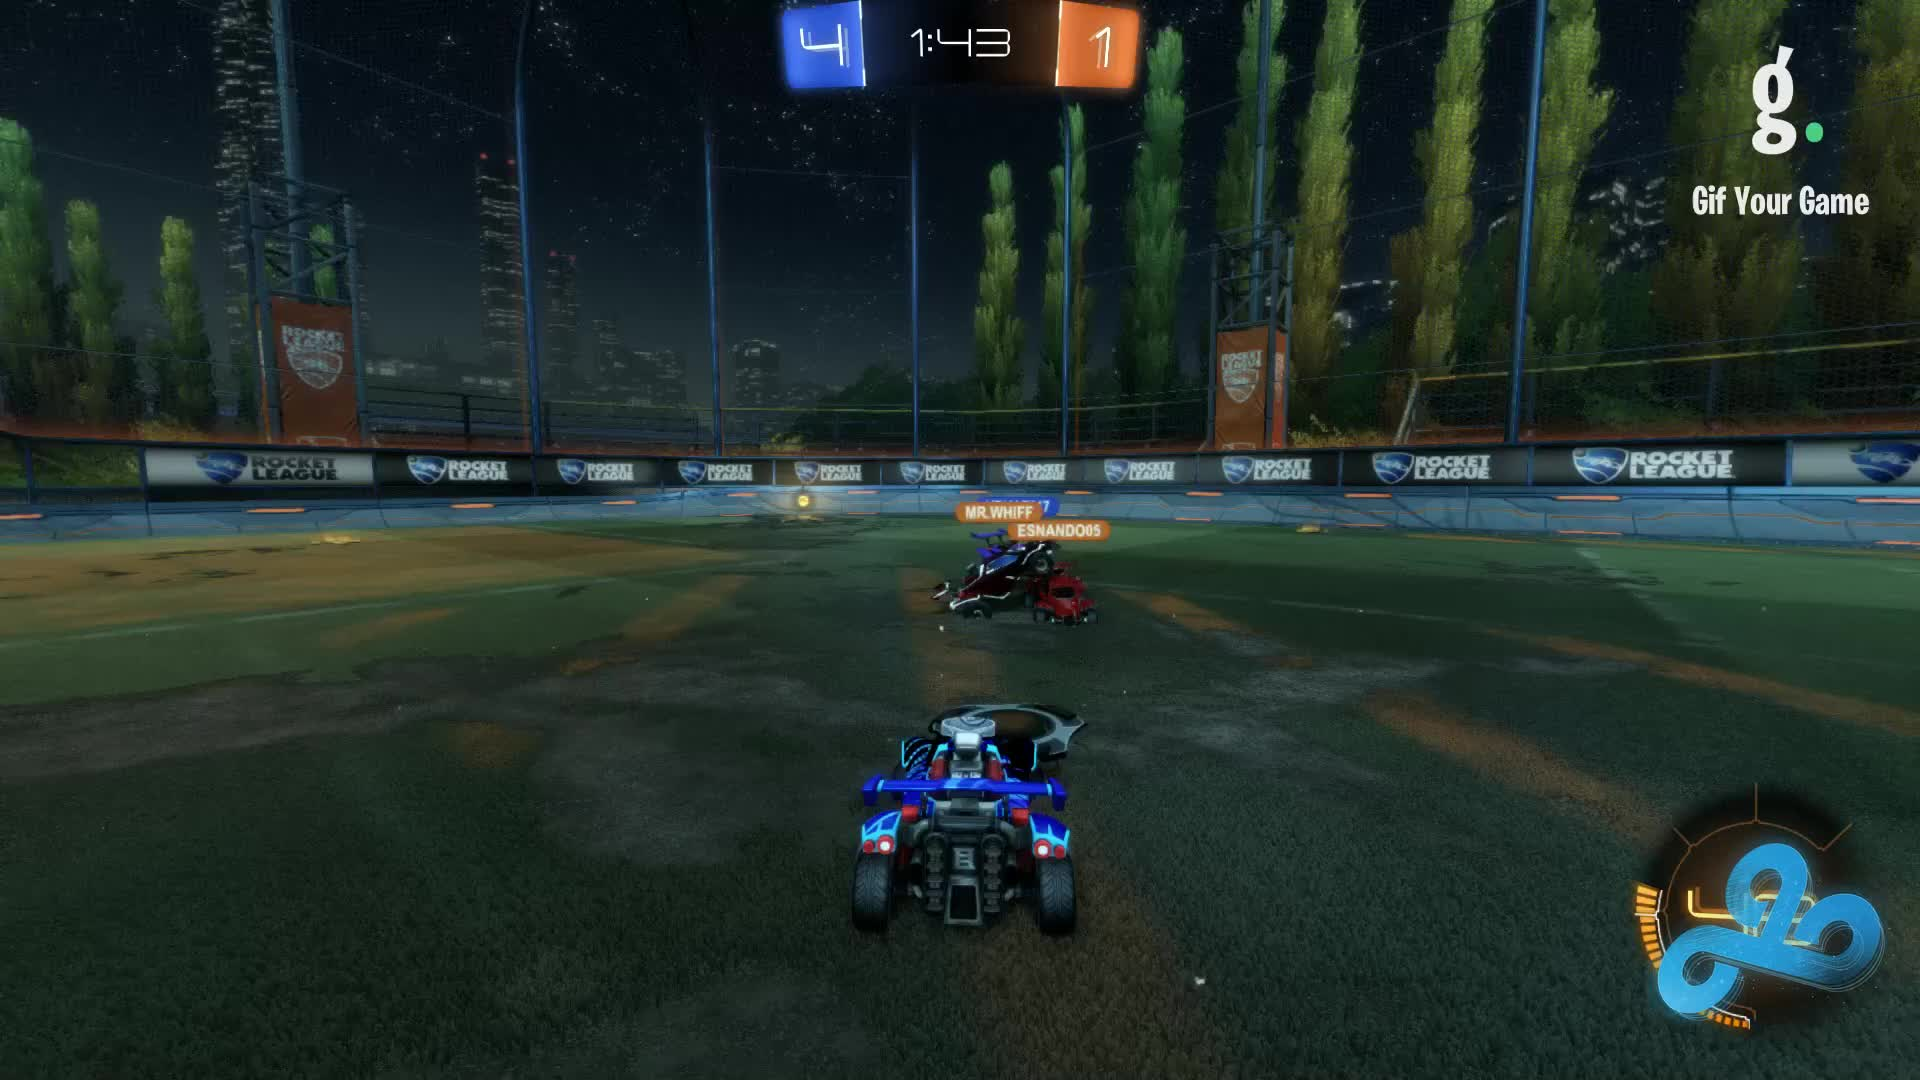 Gif Your Game, GifYourGame, Goal, GrizzlyAdams375, Rocket League, RocketLeague, Goal 6: Doughy GIFs